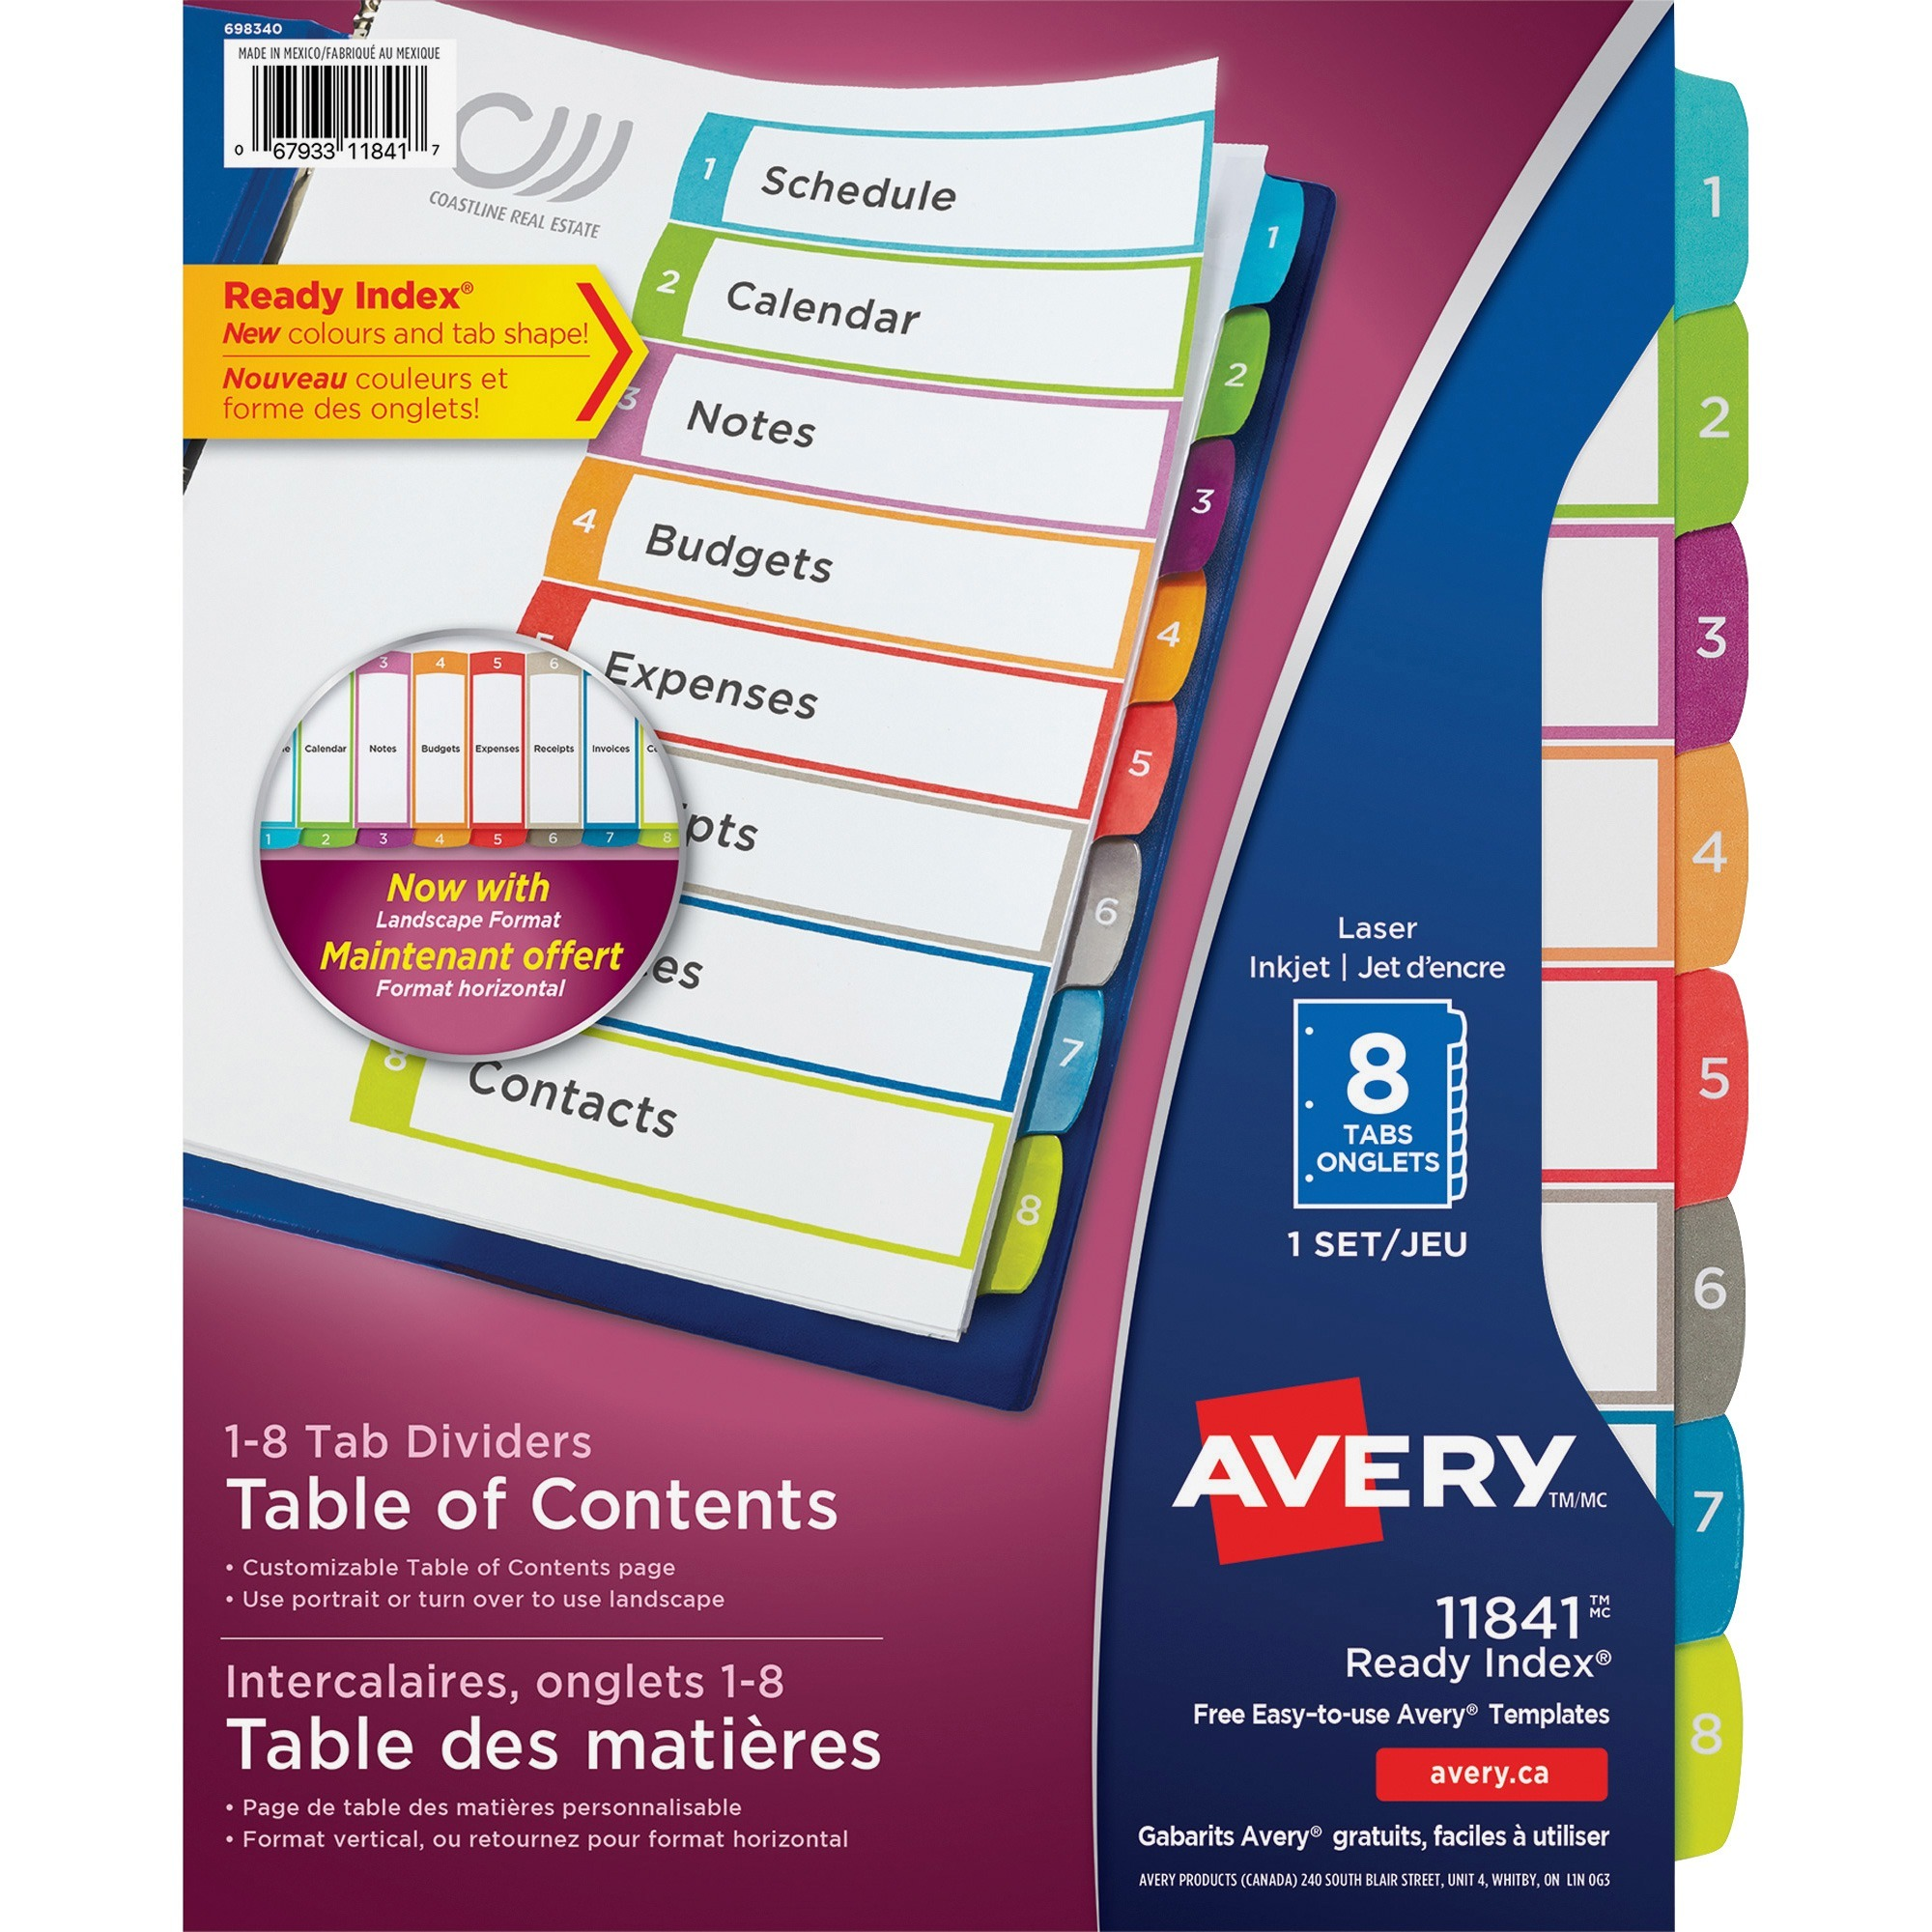 Product ave11841 avery ready index customizable table of contents loading zoom saigontimesfo